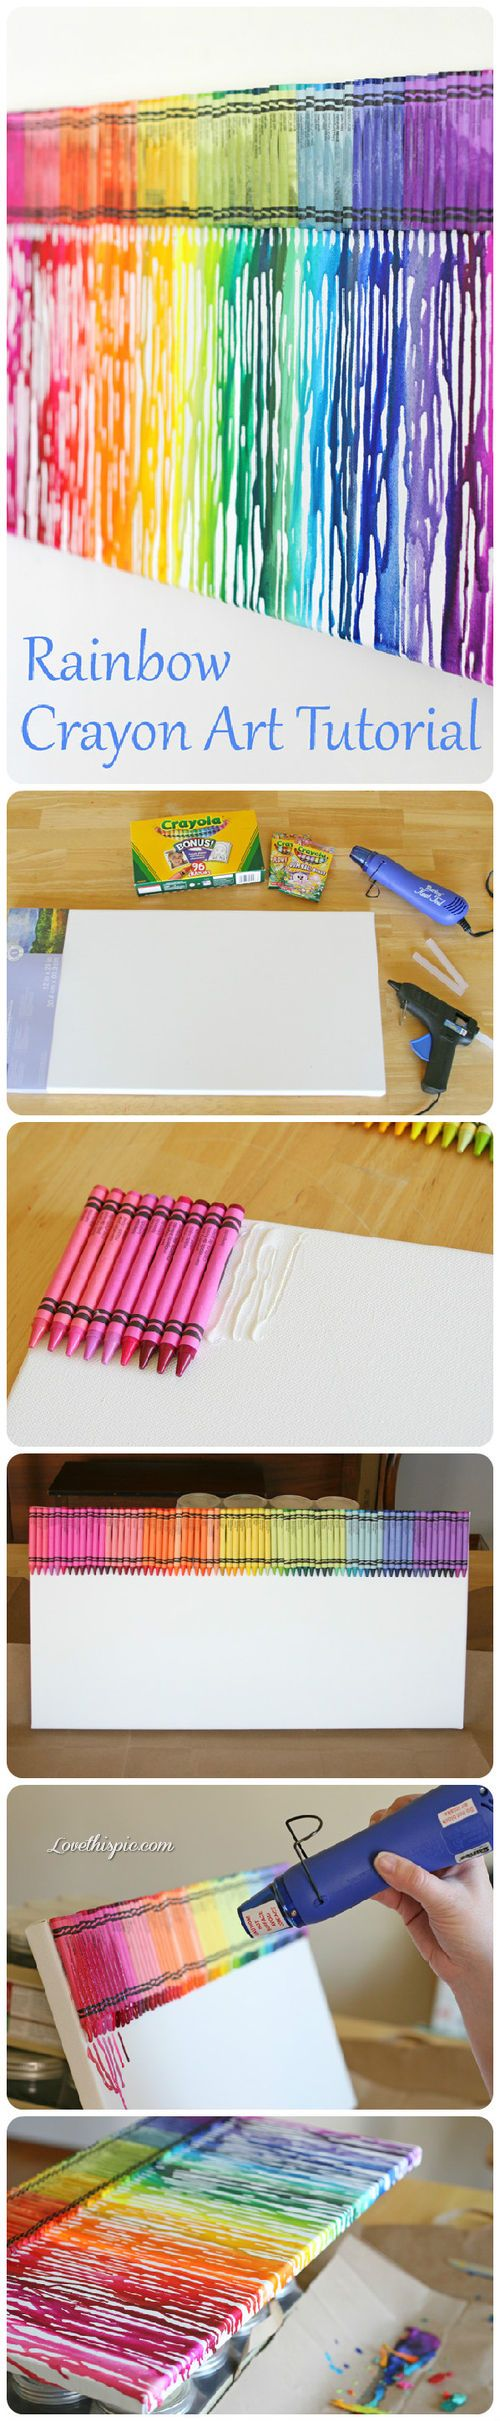 DIY+:rainbow+art+crayon+tutorial+colorful+crayons+diy+crafts+home+made+easy+crafts+craft+idea+crafts+ideas+diy+ideas+diy+crafts+diy+idea+kids+crafts+diy+art